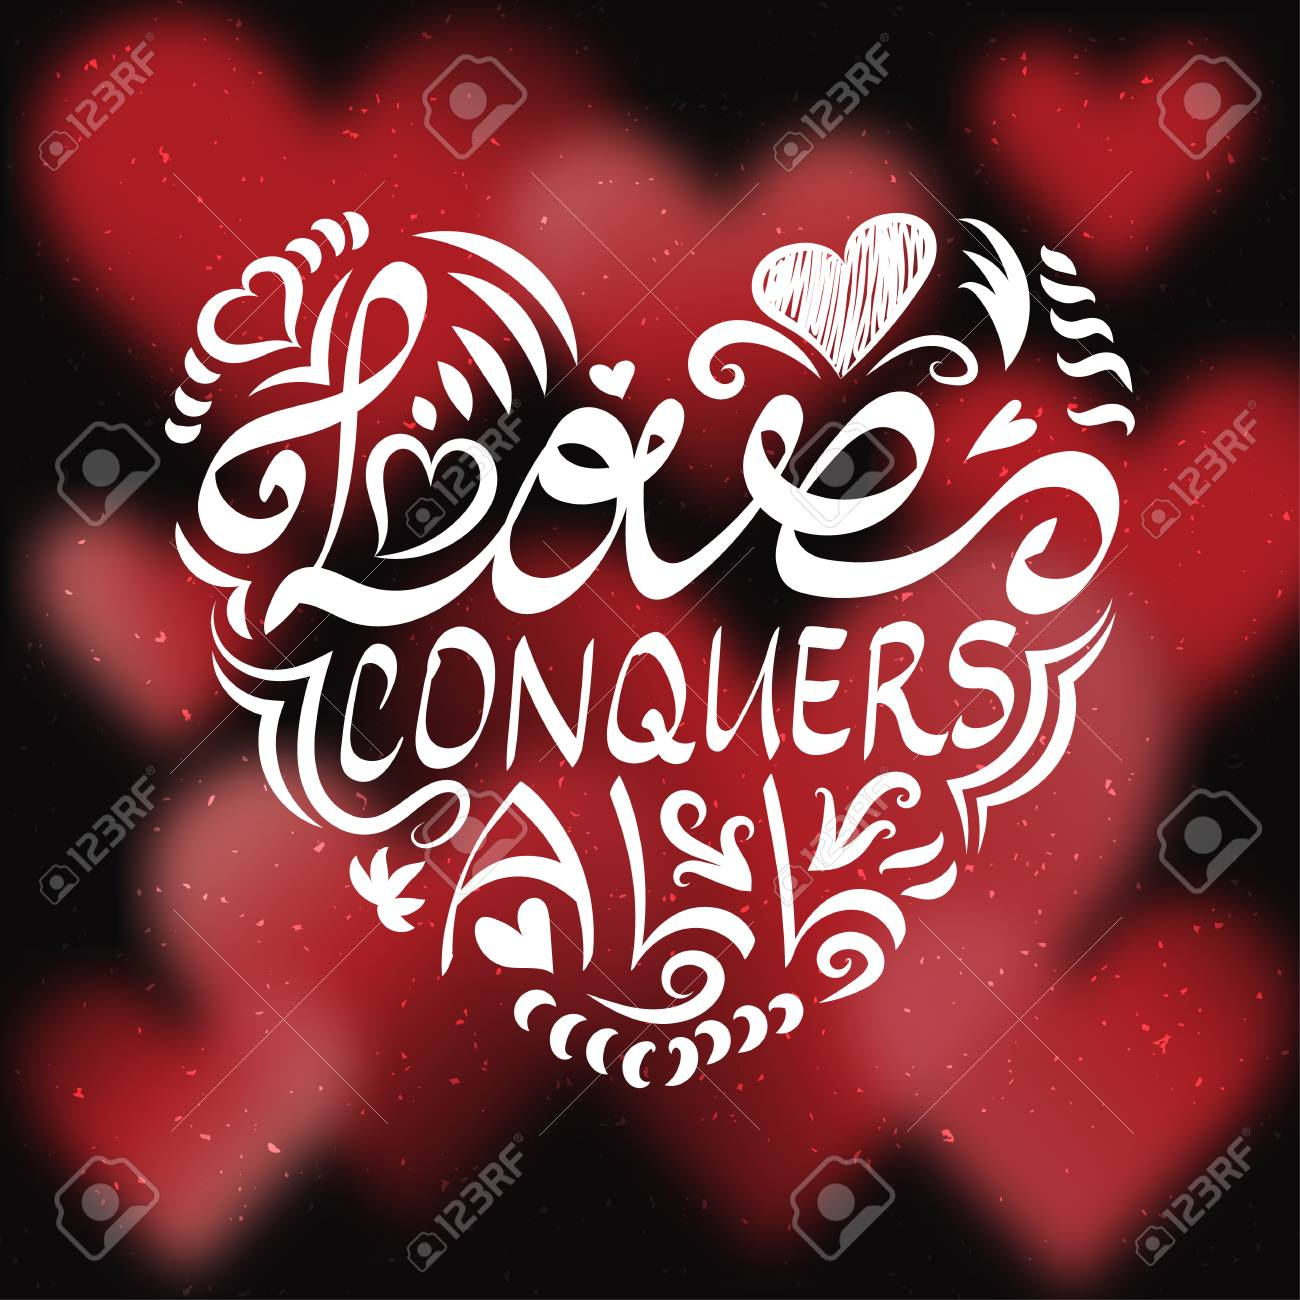 Love Conguers All. Poster With Romantic Quote On Blurred Background.  Valentines Day Greeting Card